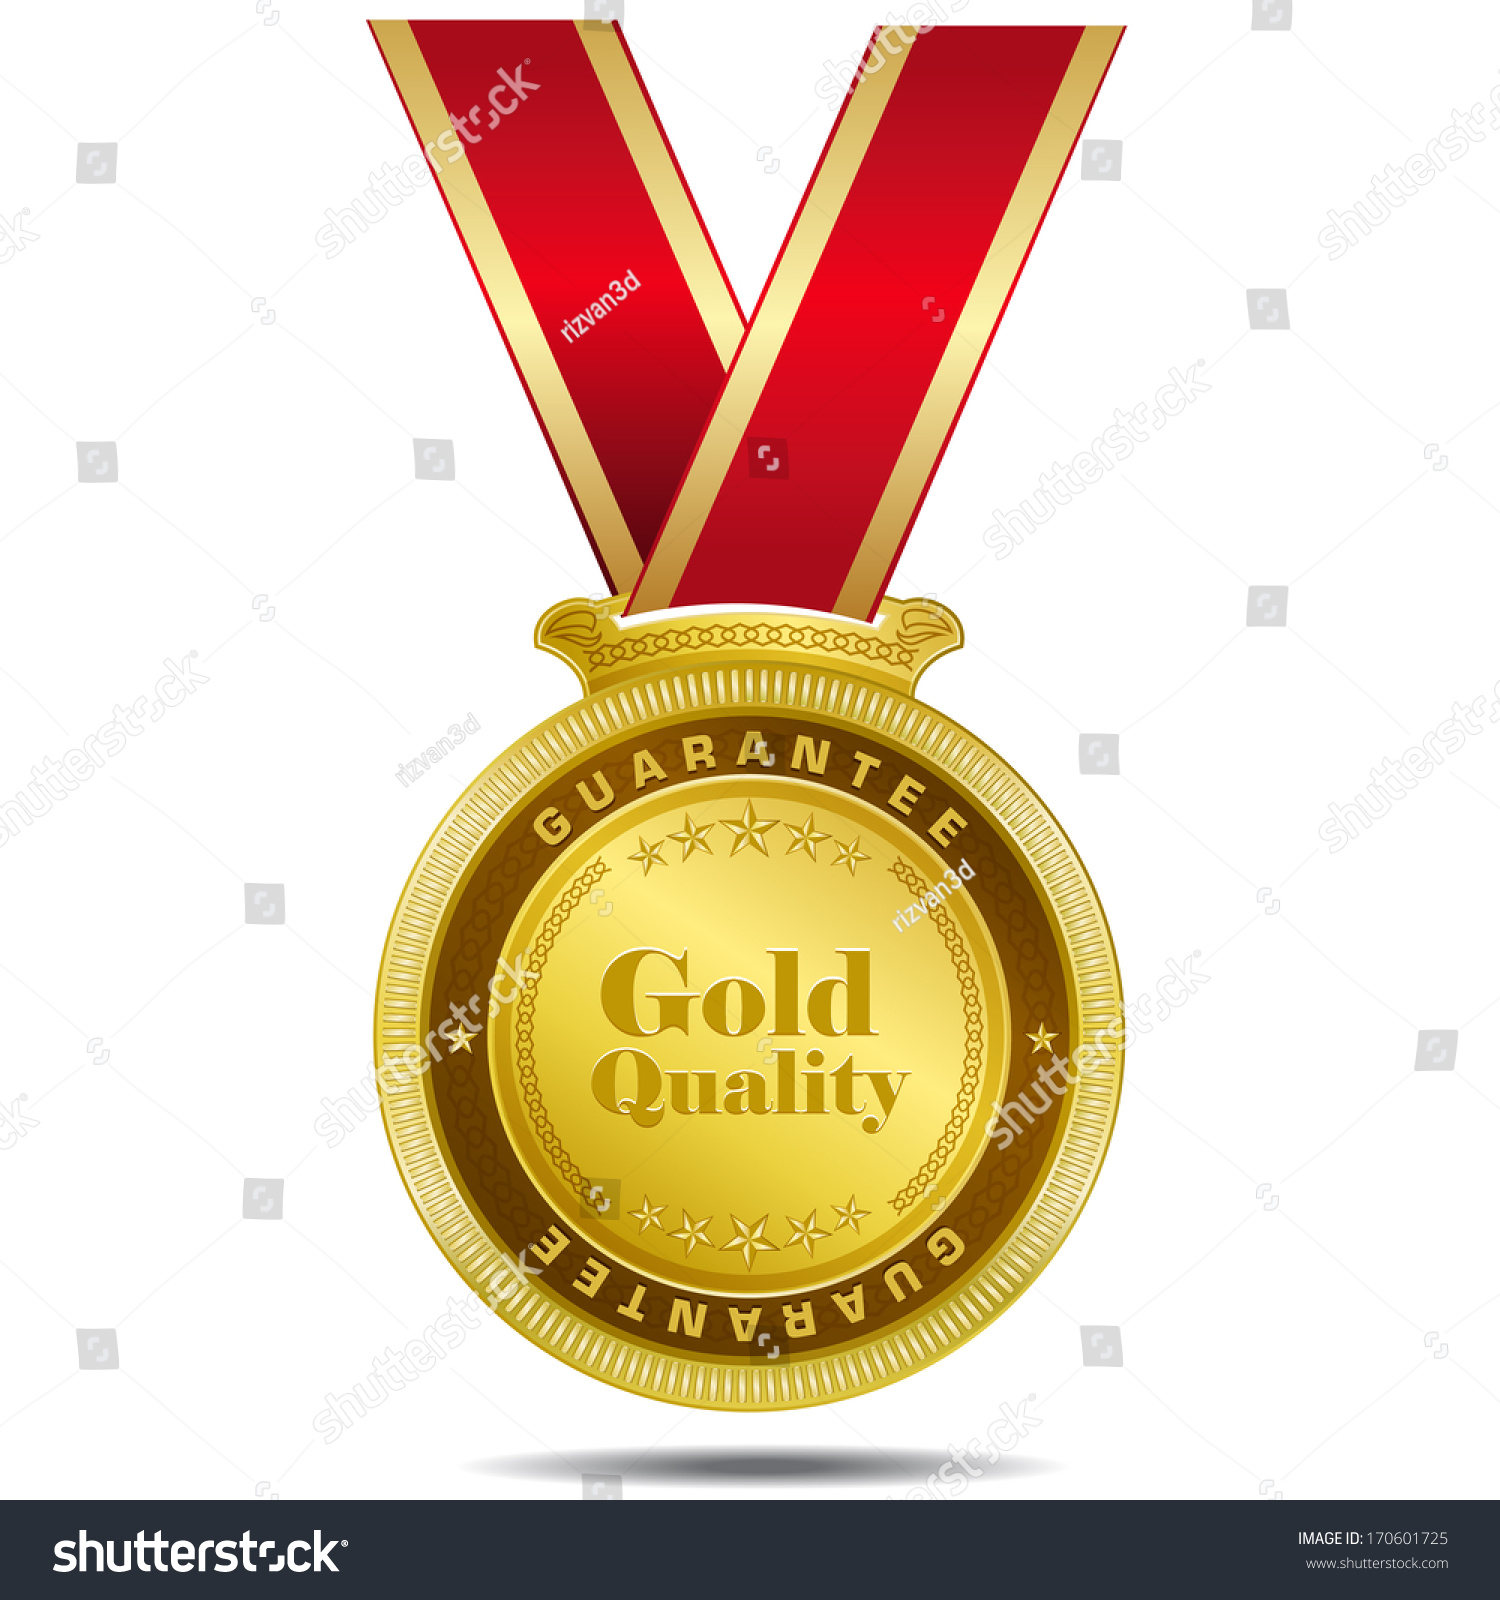 label hd image royalty gold best free vector round sign quality stock